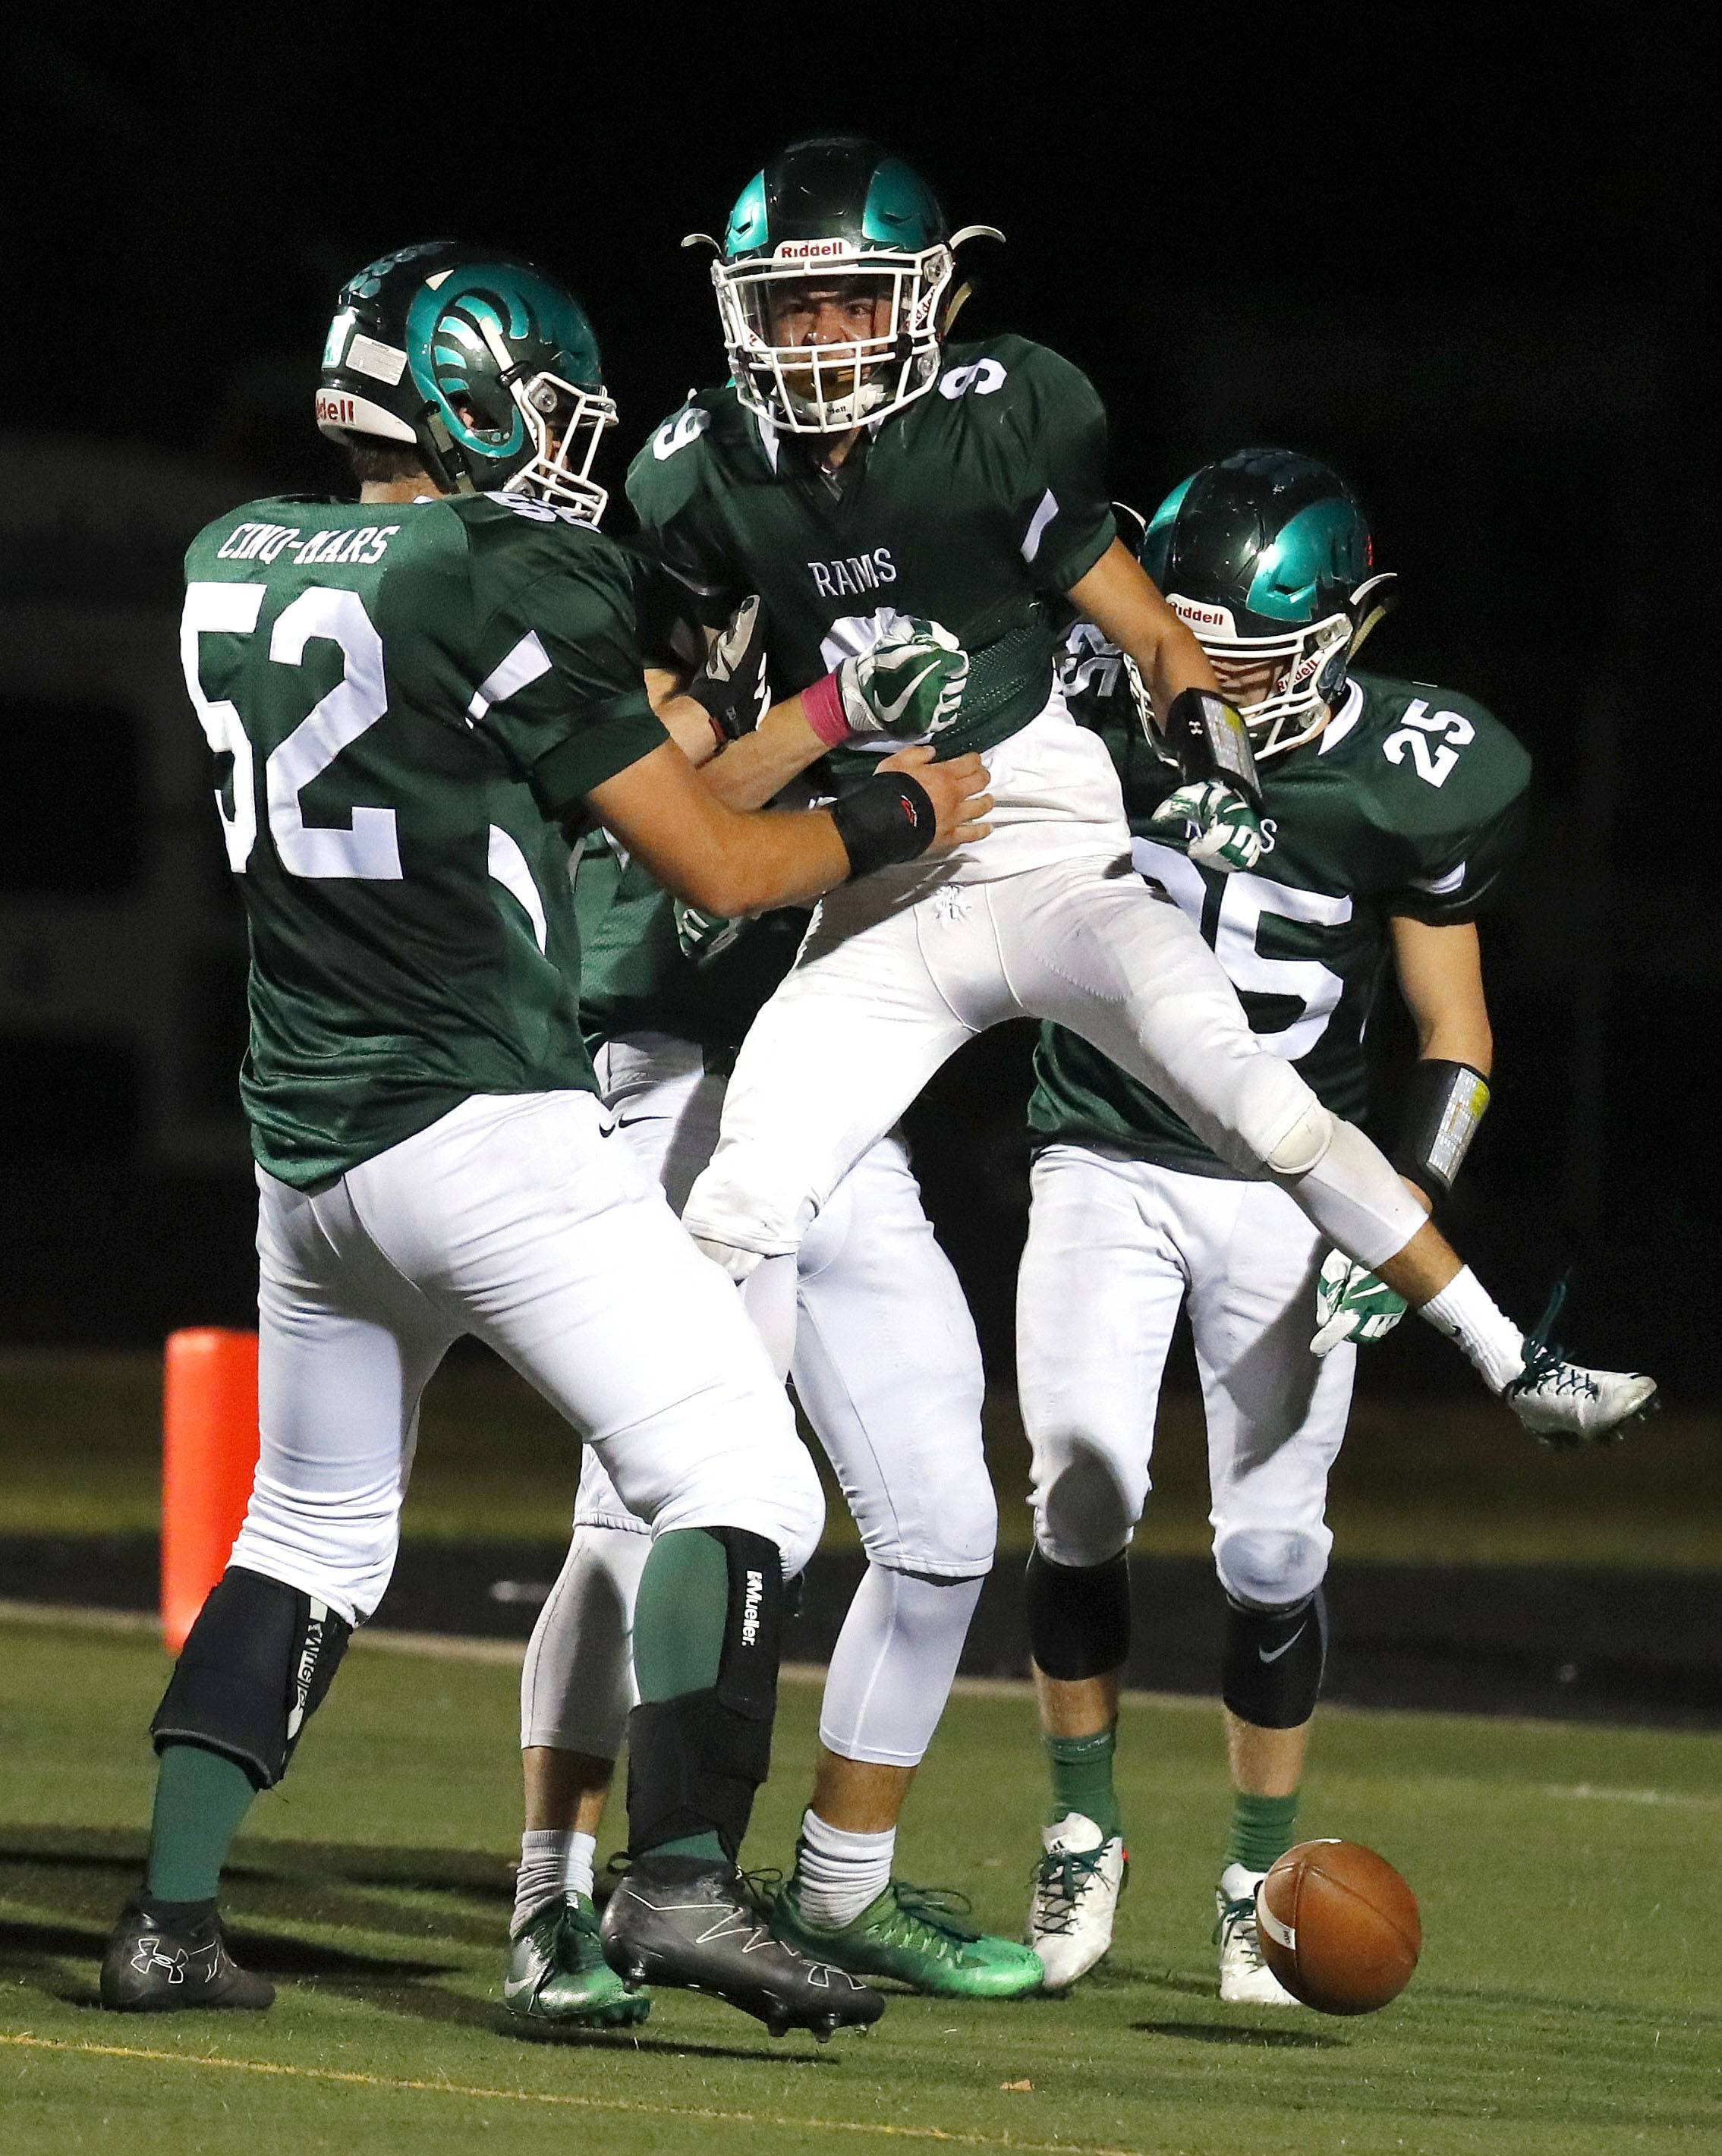 Grayslake Central's Jordan Franco celebrates with teammates after a touchdown catch against Grayslake North on Friday night at Grayslake Central.